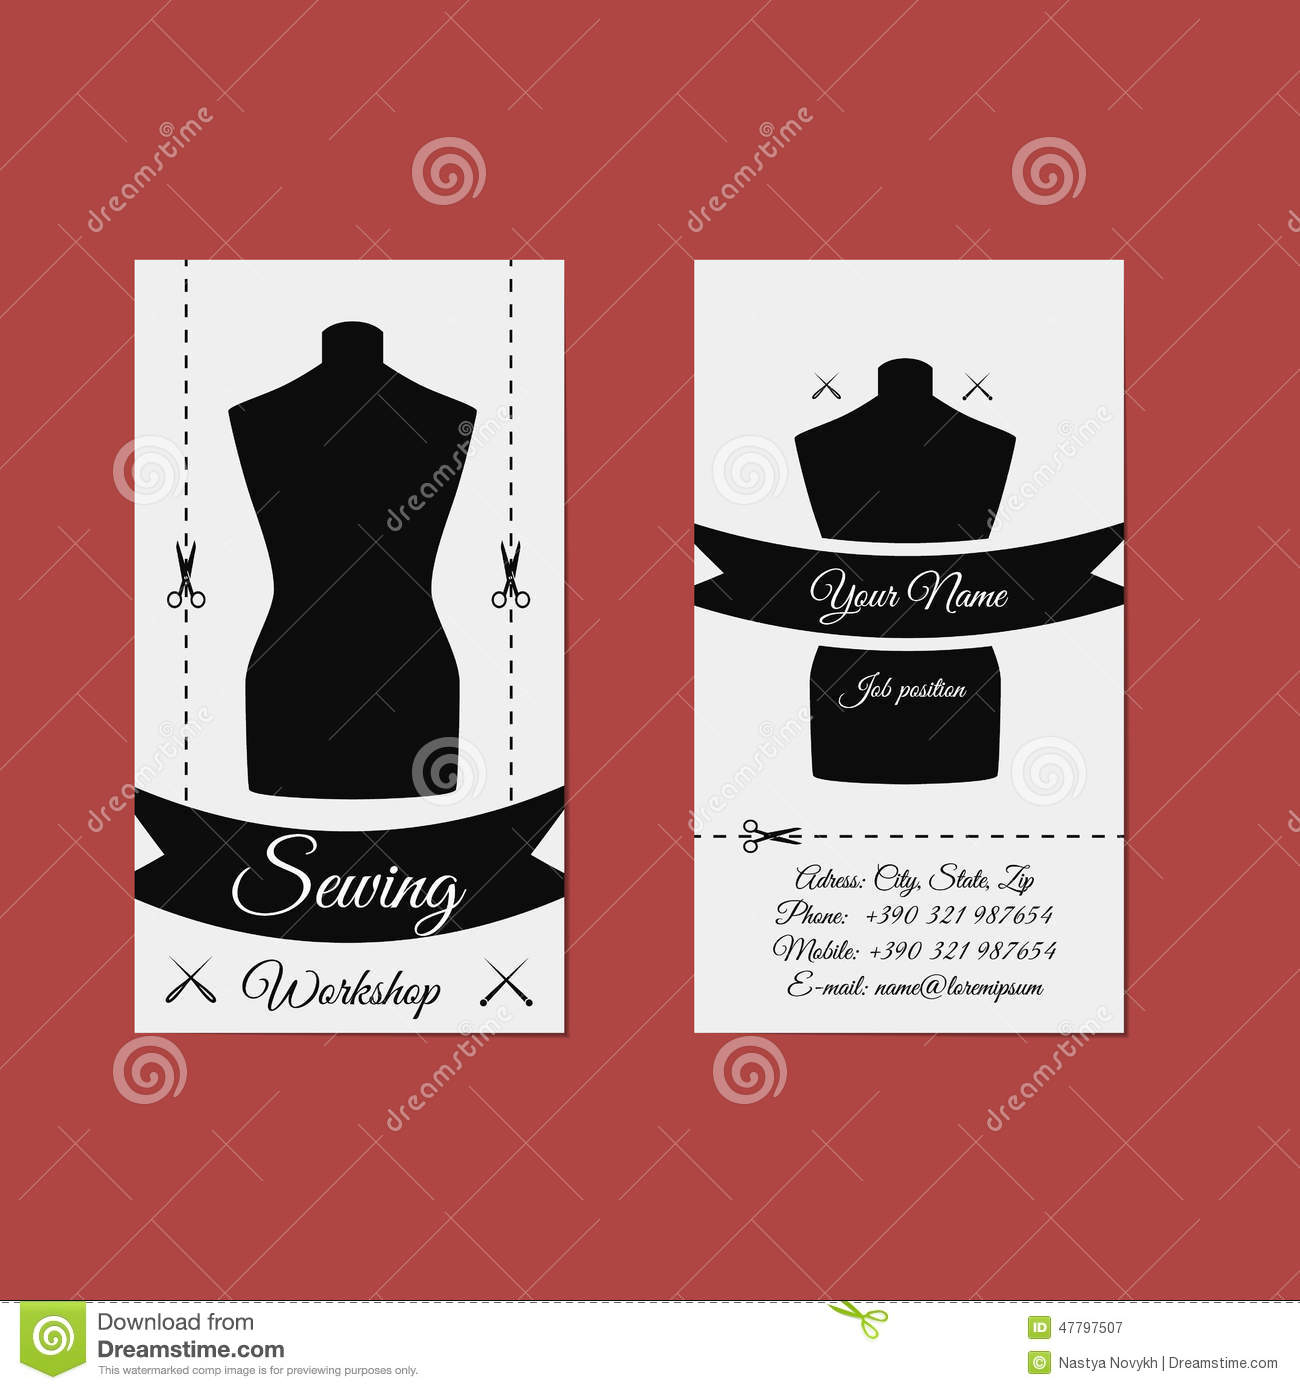 Tailor/ Seamstress Business Card Stock Photo - Image: 49212287